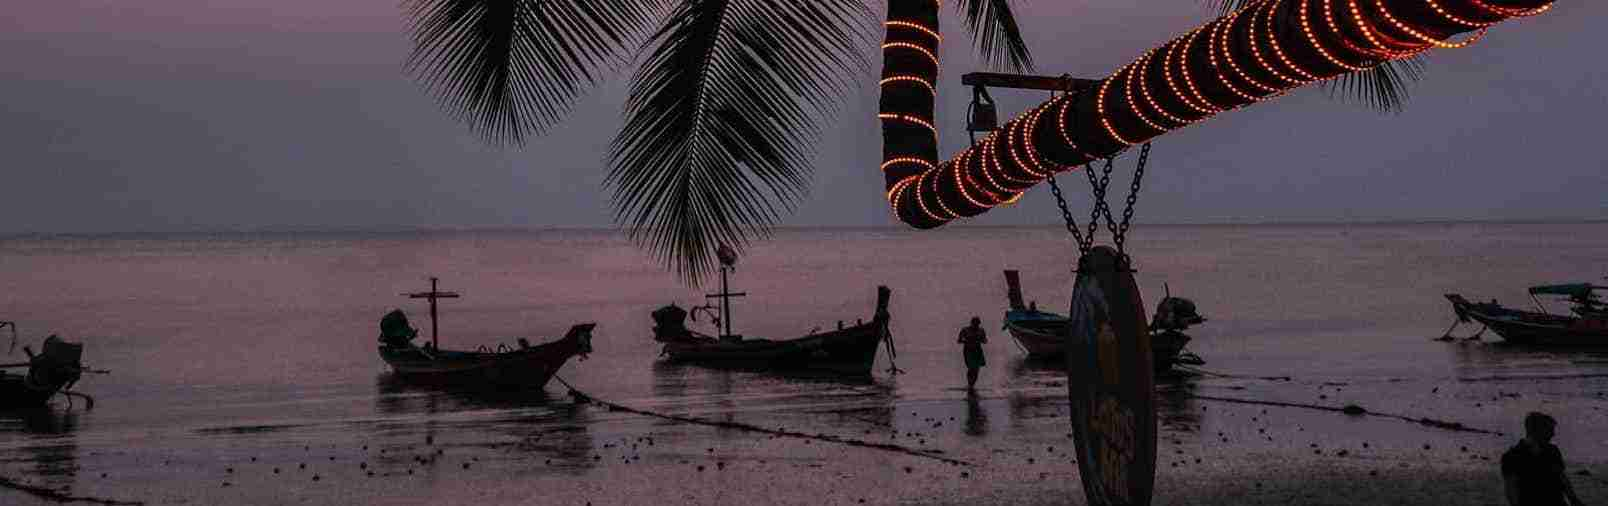 Koh Tao Or Koh Lipe In Thailand, Which Island To Choose?